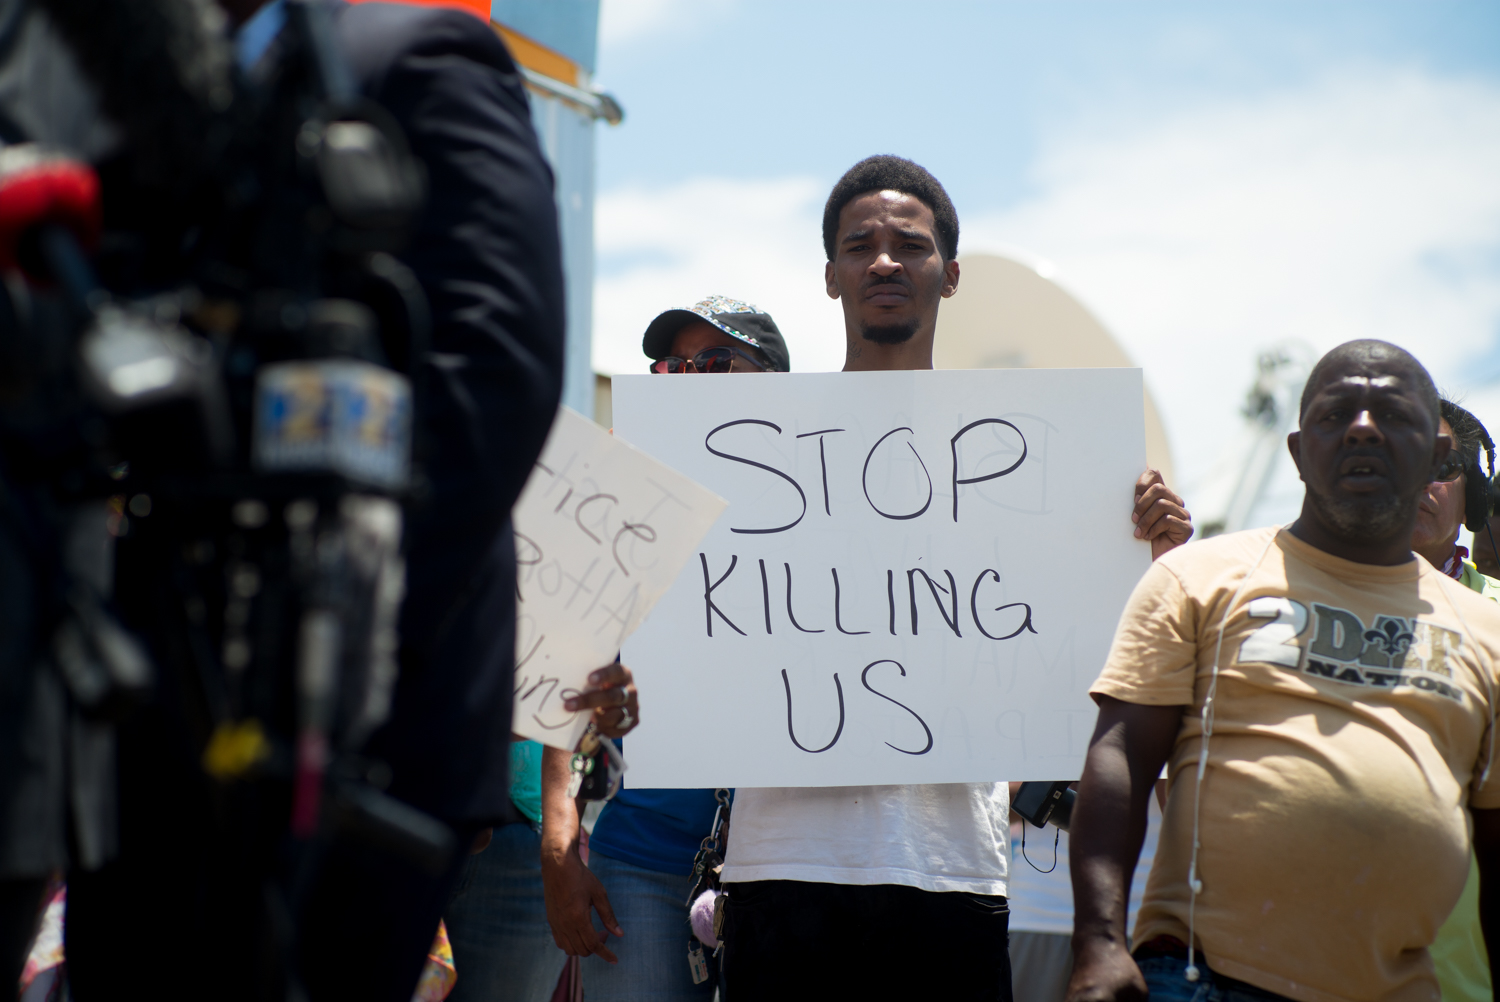 A young man holds up a sign as people gather at the scene where Alton Sterling was shot and killed by police.